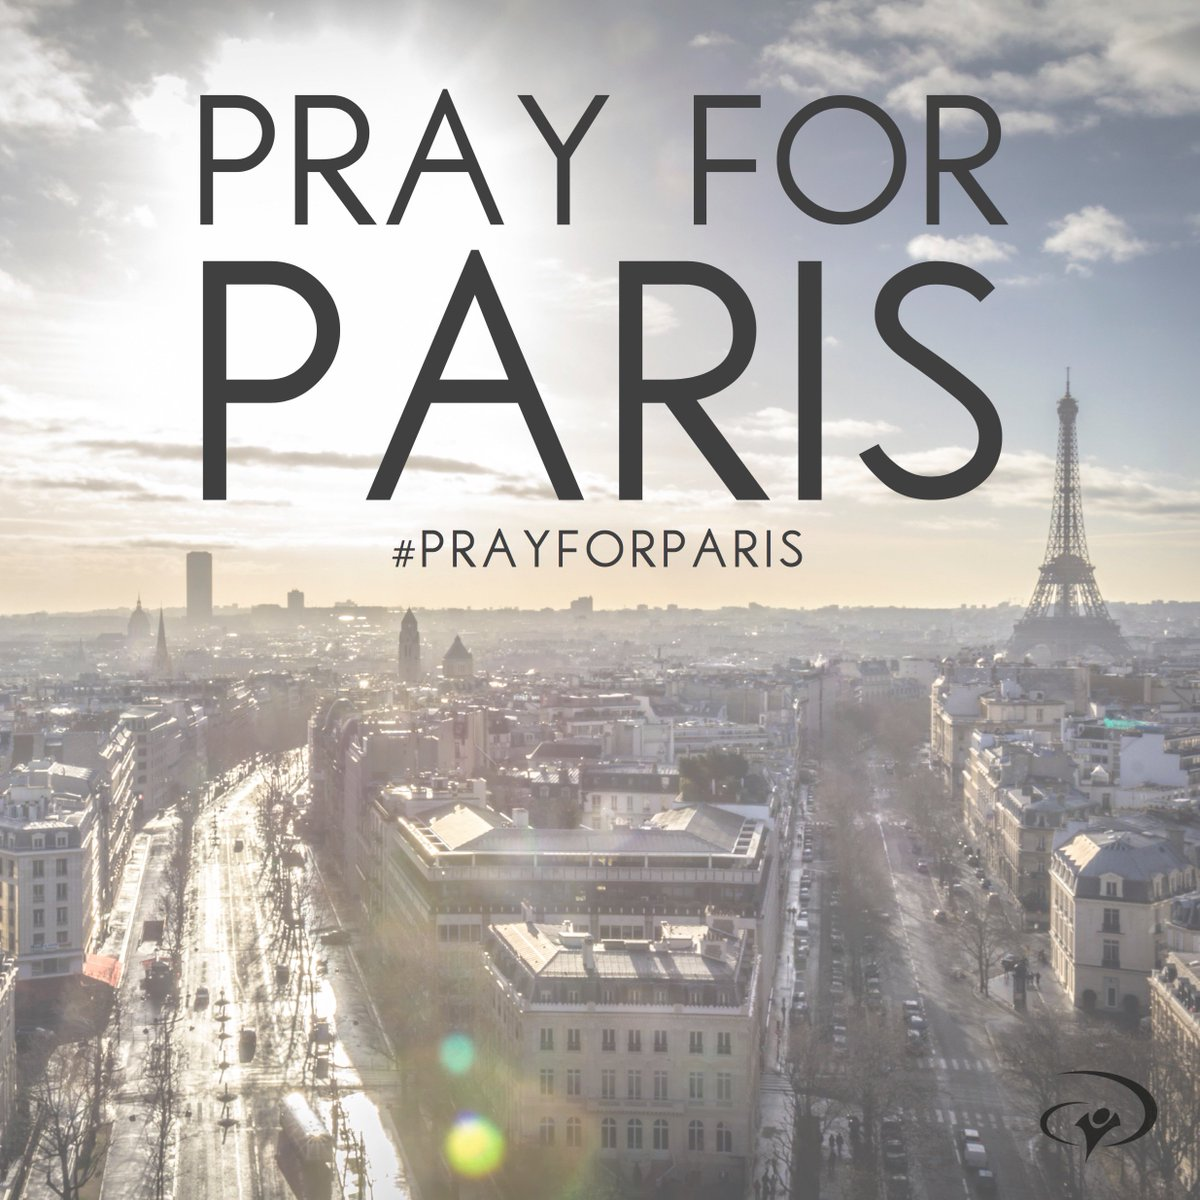 Please join with us in lifting up in prayer the beautiful city of Paris & it's people. #prayforparis #ywam https://t.co/HDof8bj1AP